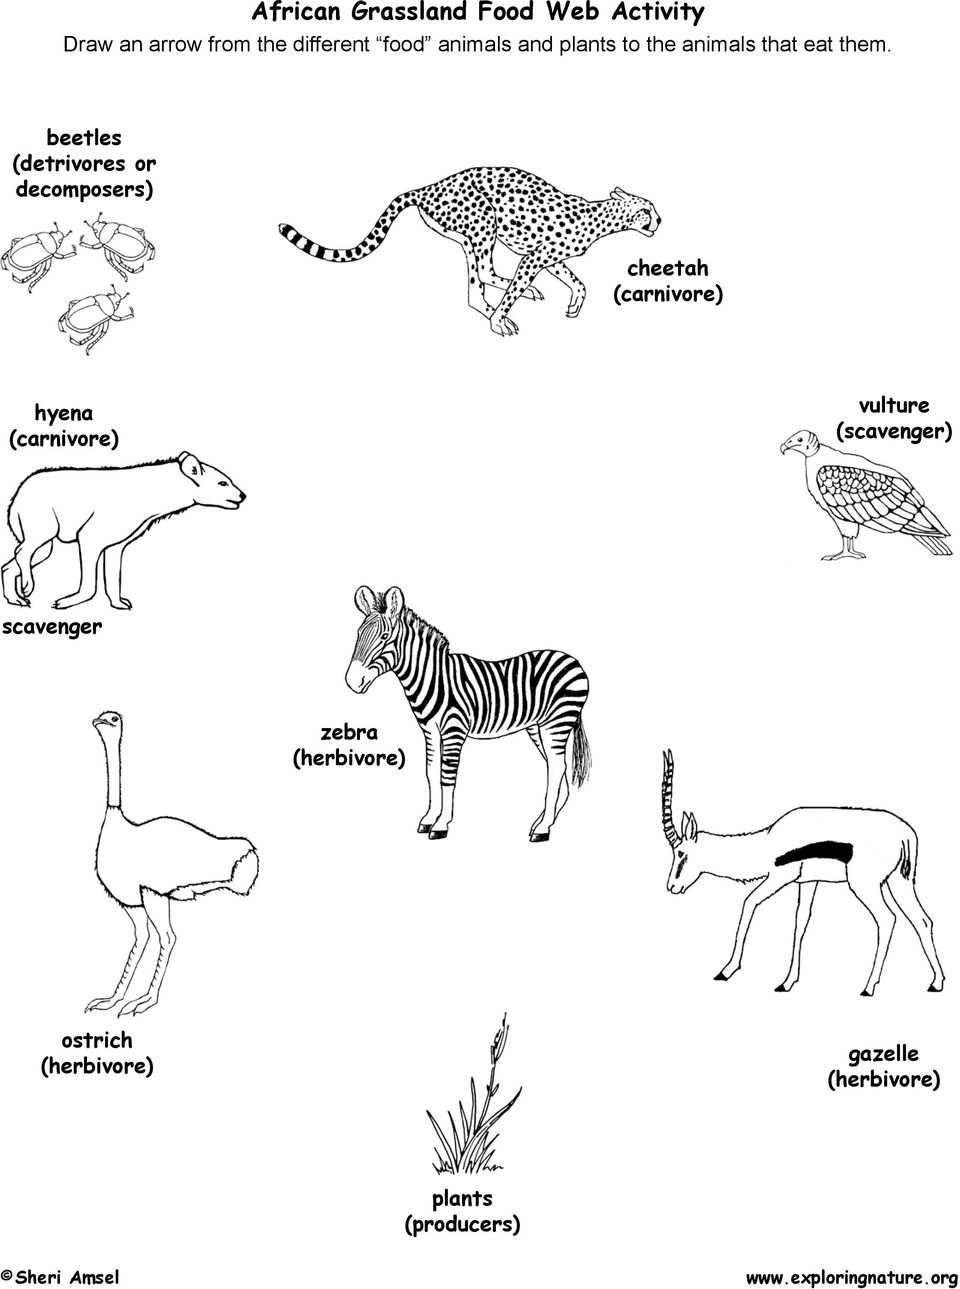 beetles (detrivores or decomposers) cheetah (carnivore) hyena (carnivore)